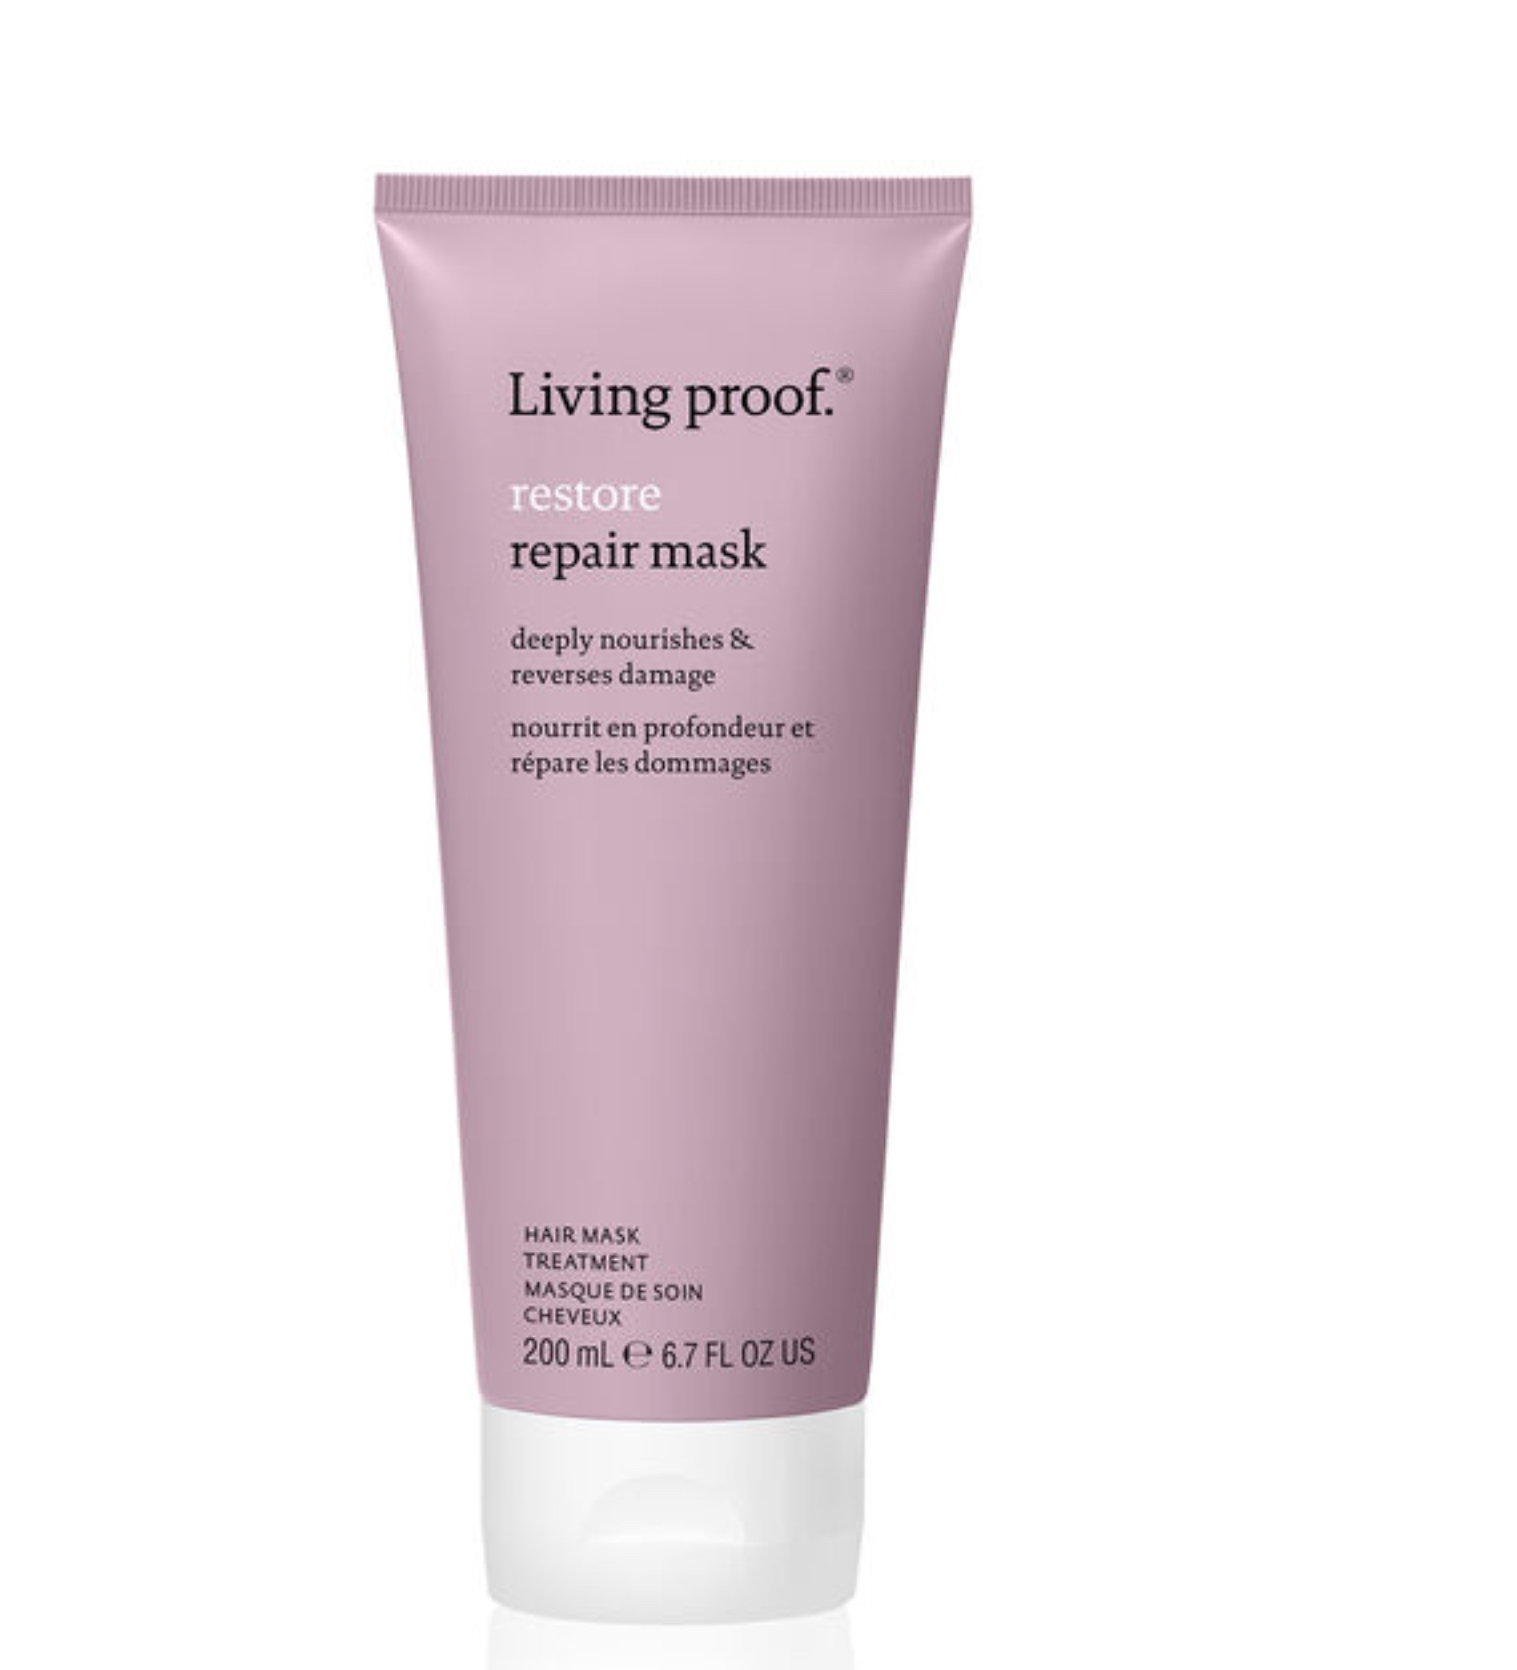 Living Proof Restore Repair Mask, 200ml